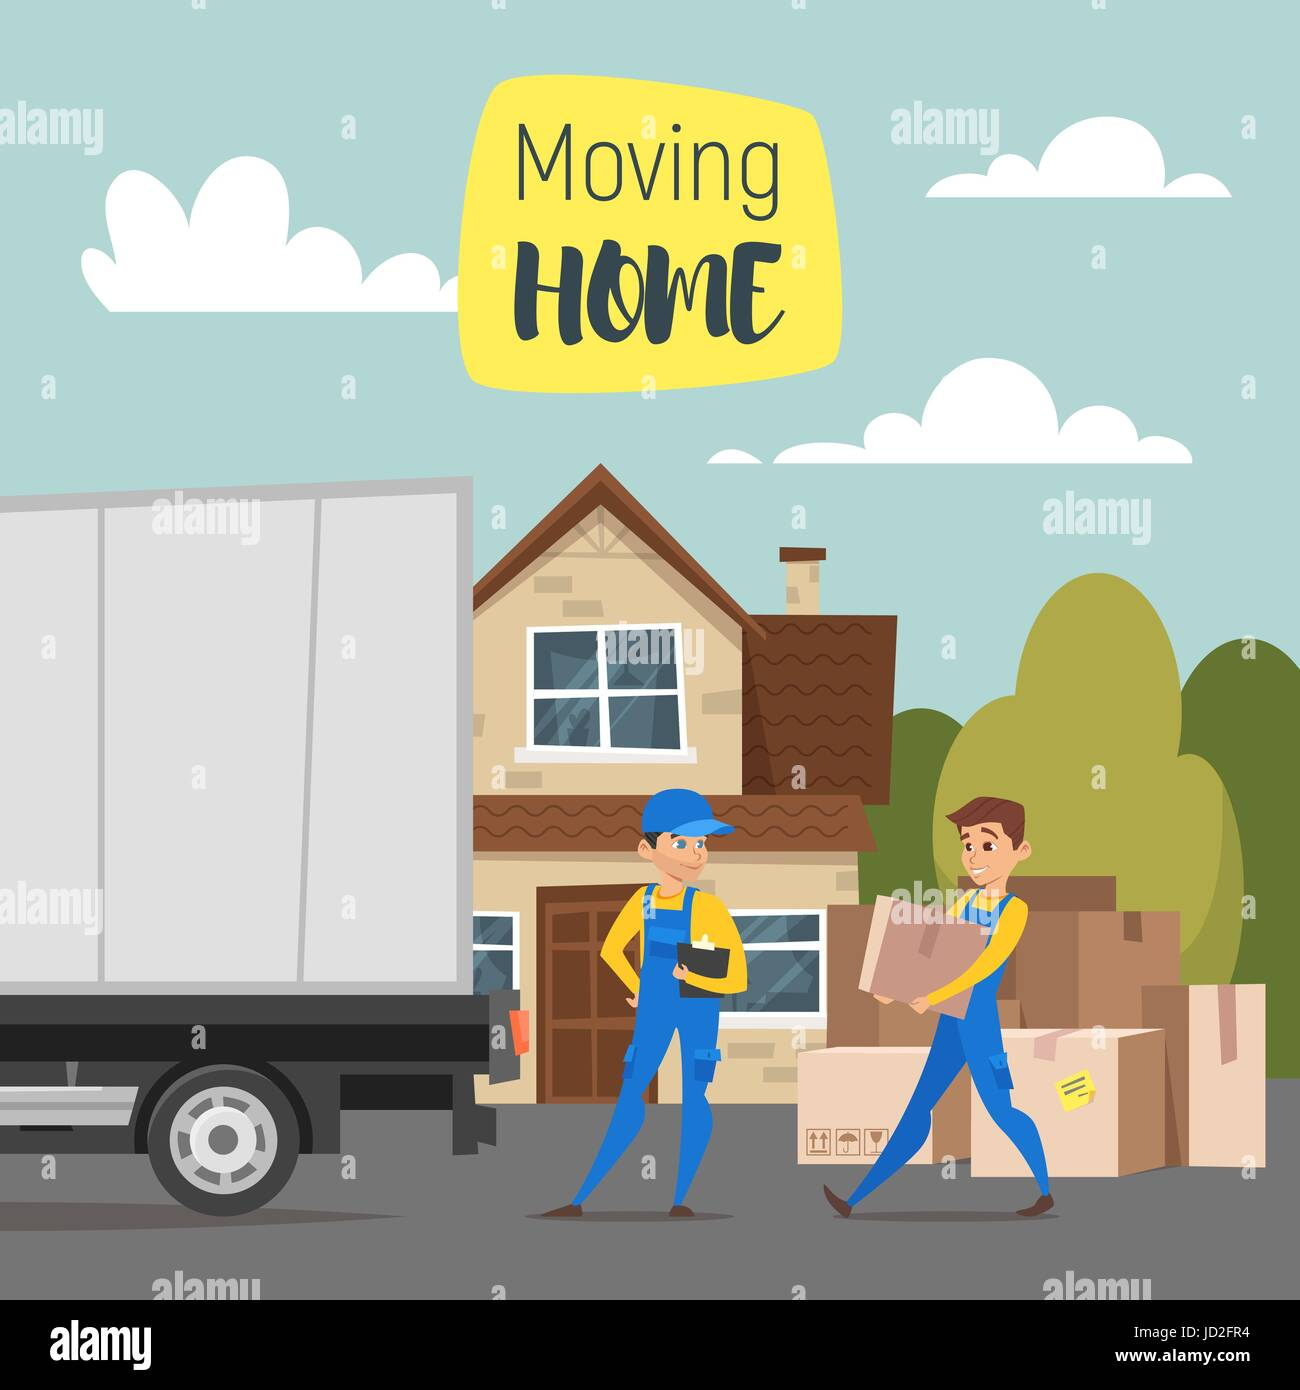 Vector cartoon style illustration of loaders movers man carrying cardboard boxes. House, paper boxes and a truck. - Stock Vector